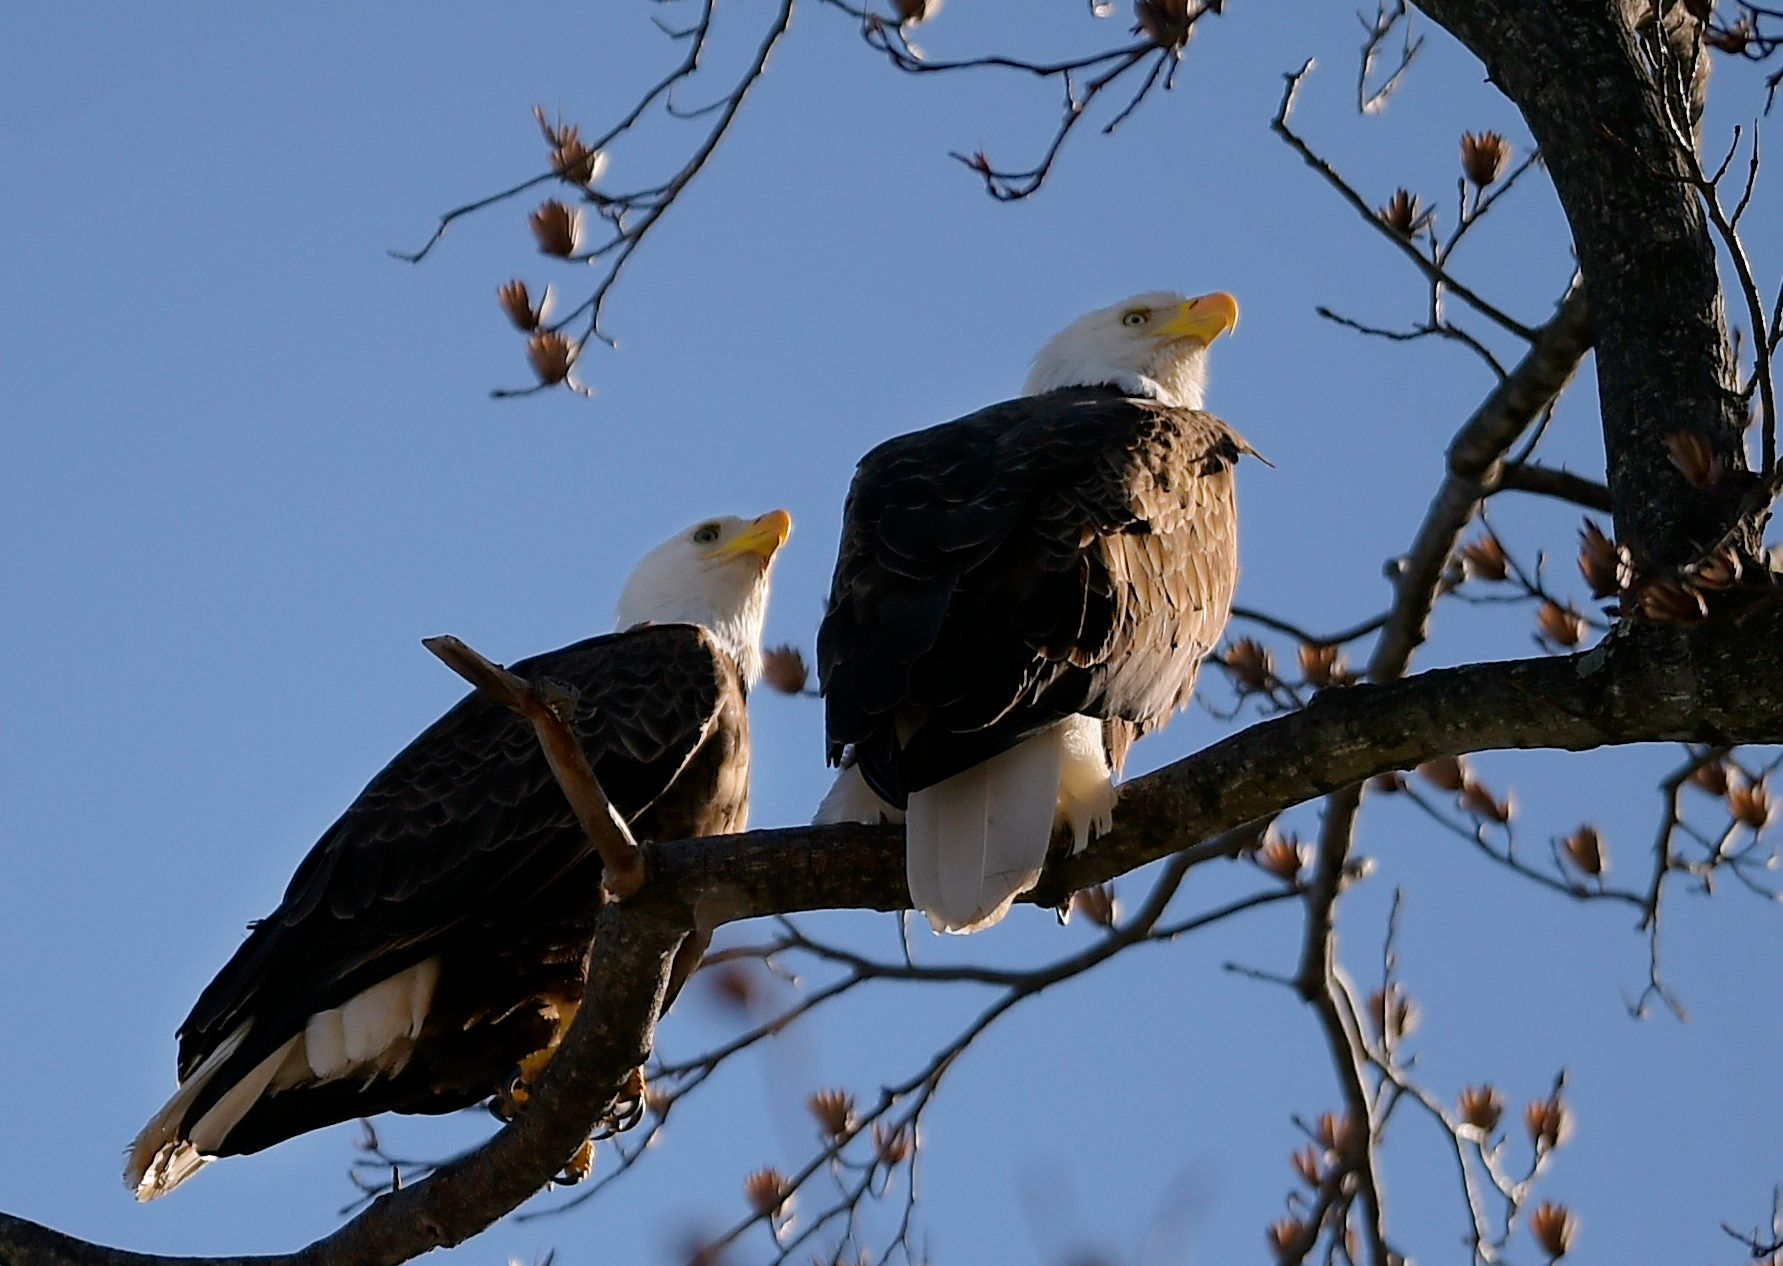 The maximum fine for harming a bald eagle is $100,000.